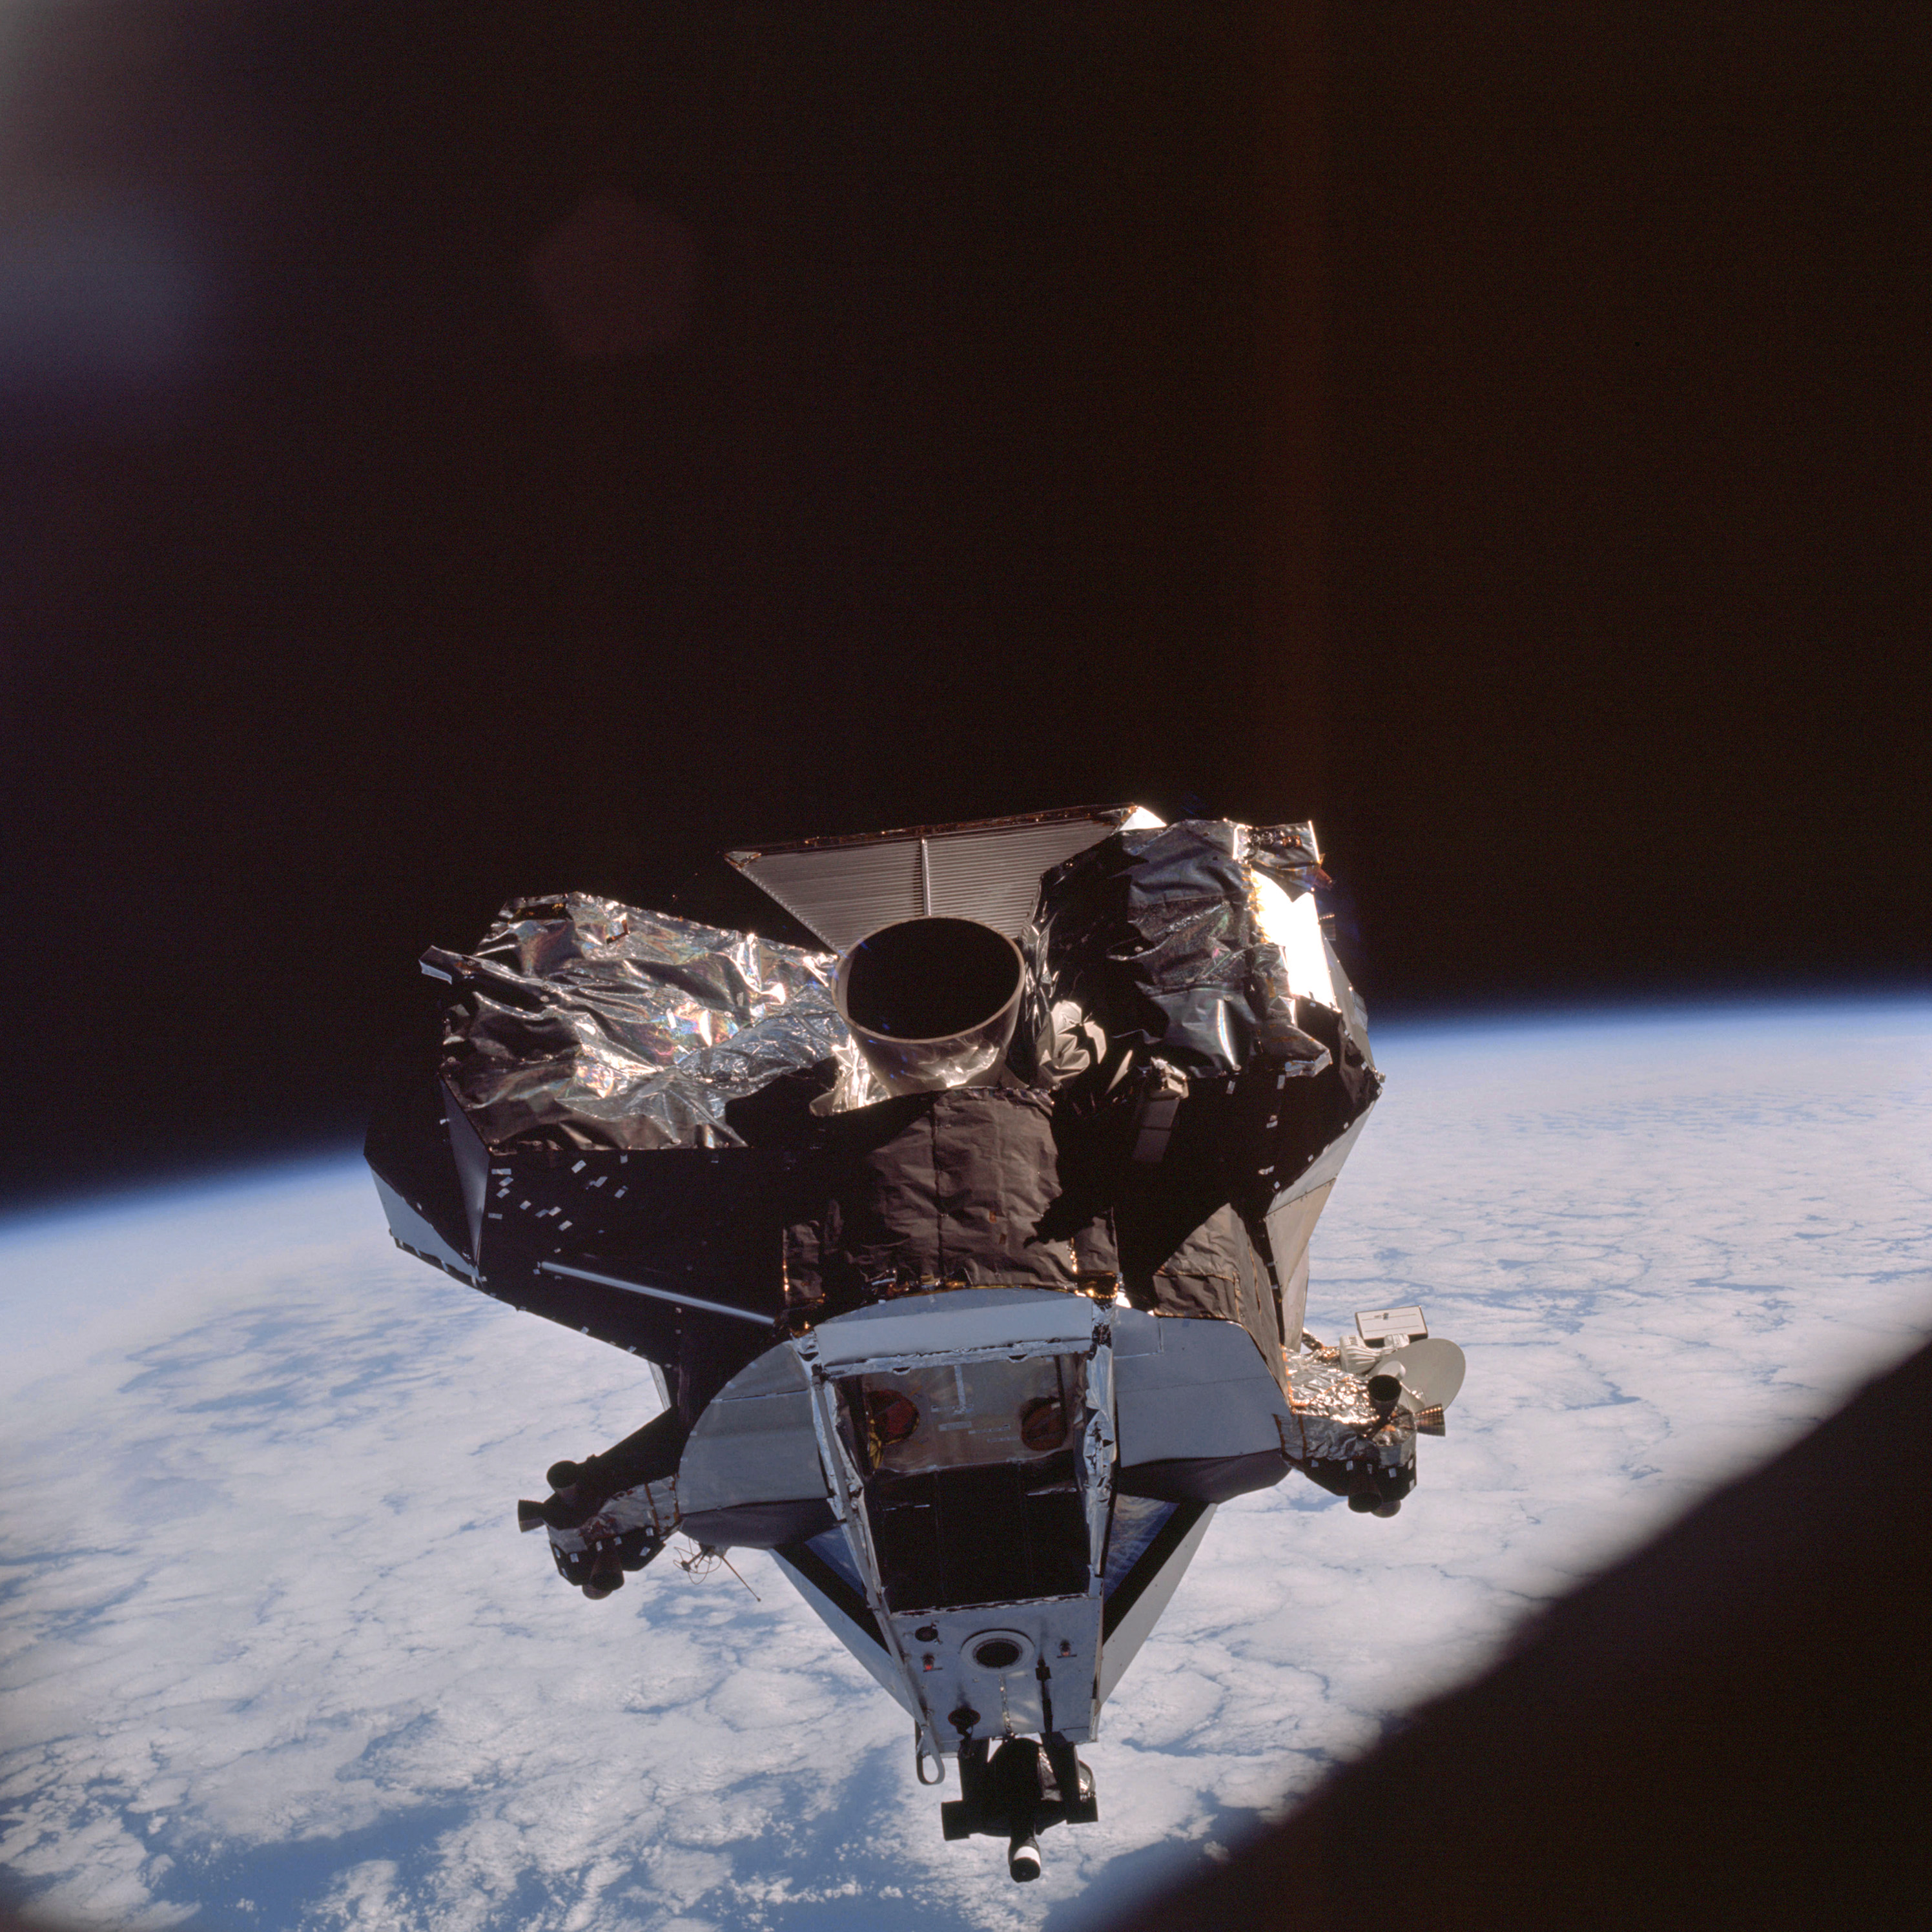 The Apollo 9 Lunar Module ascent stage during rendezvous ...